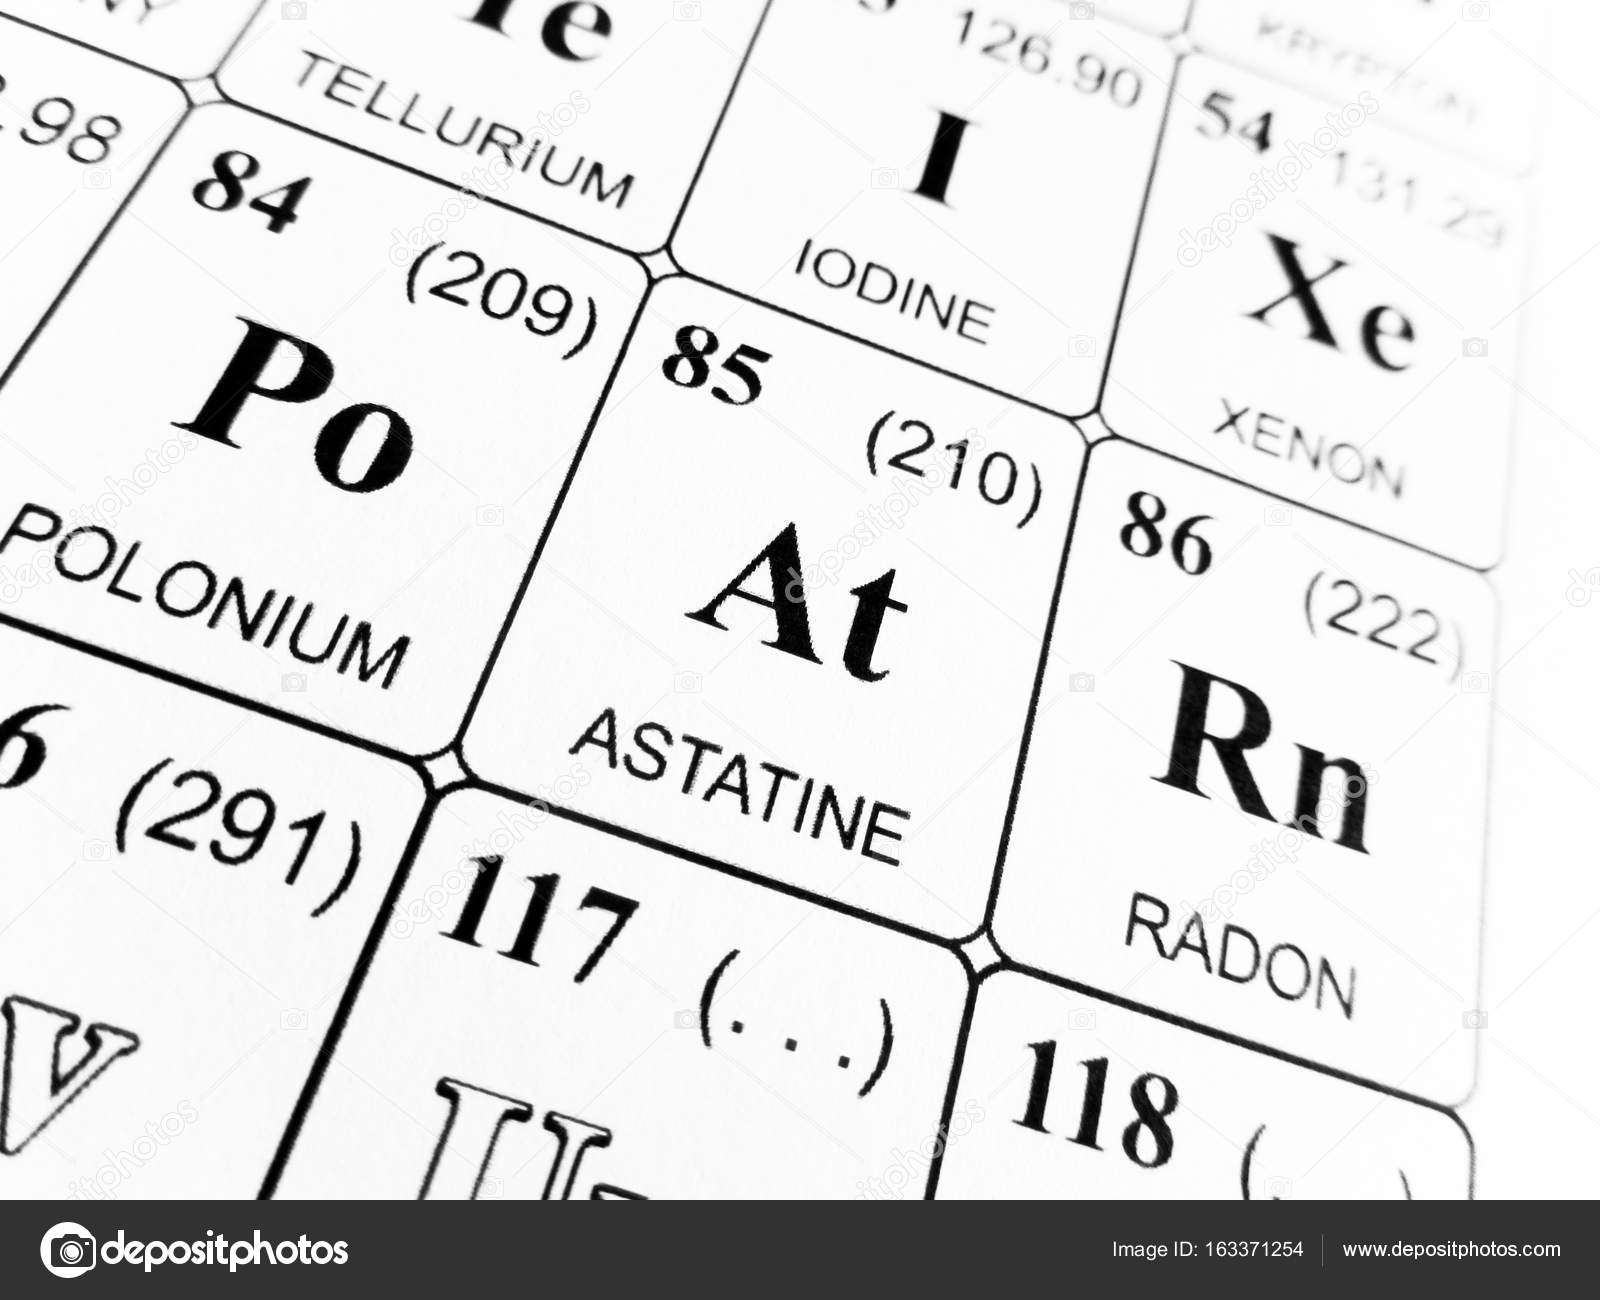 Astatine on the periodic table of the elements stock photo astatine on the periodic table of the elements photo by tonellophotography urtaz Image collections